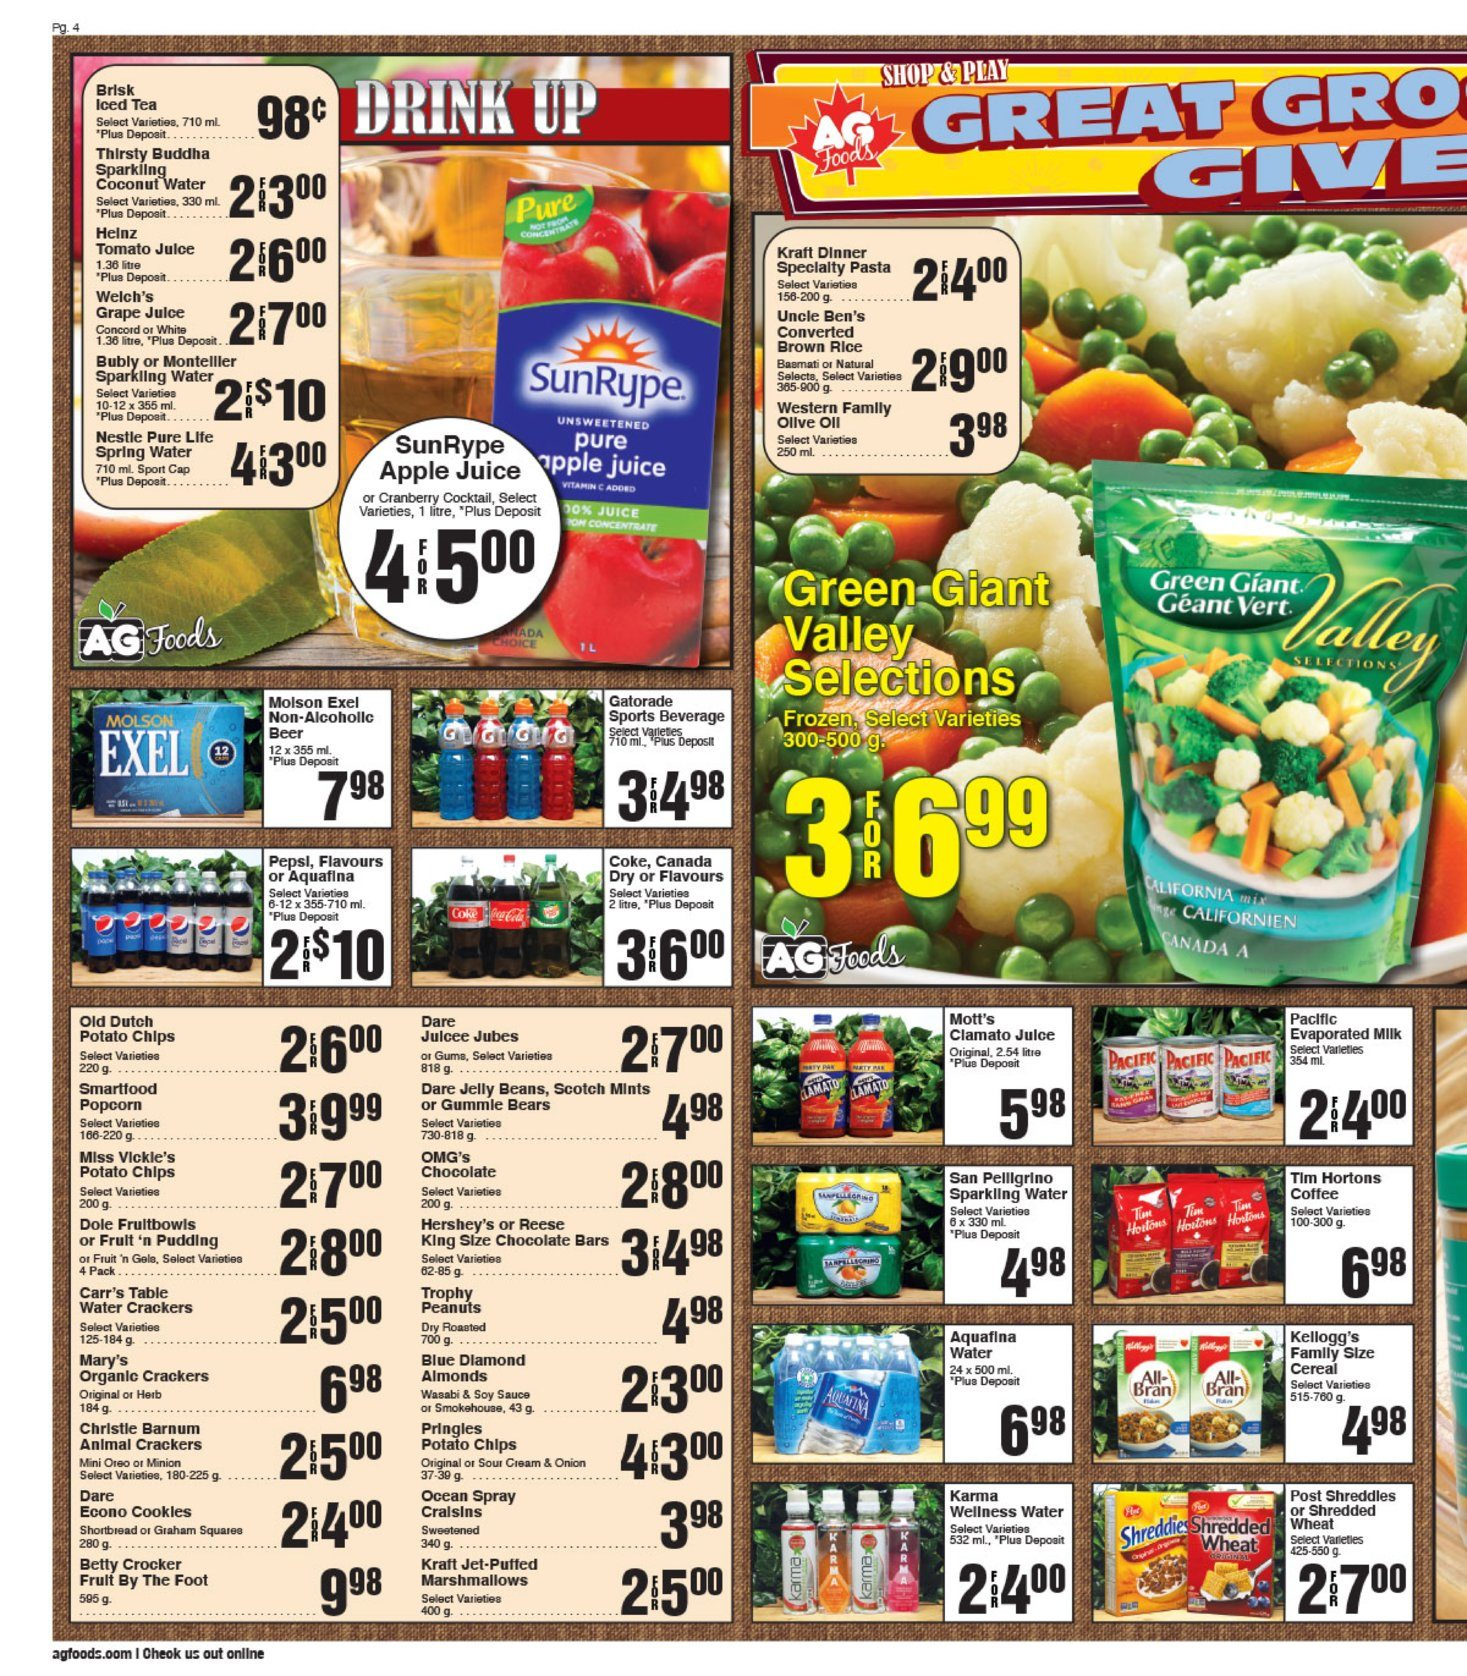 AG Foods - Weekly Flyer Specials - Page 4